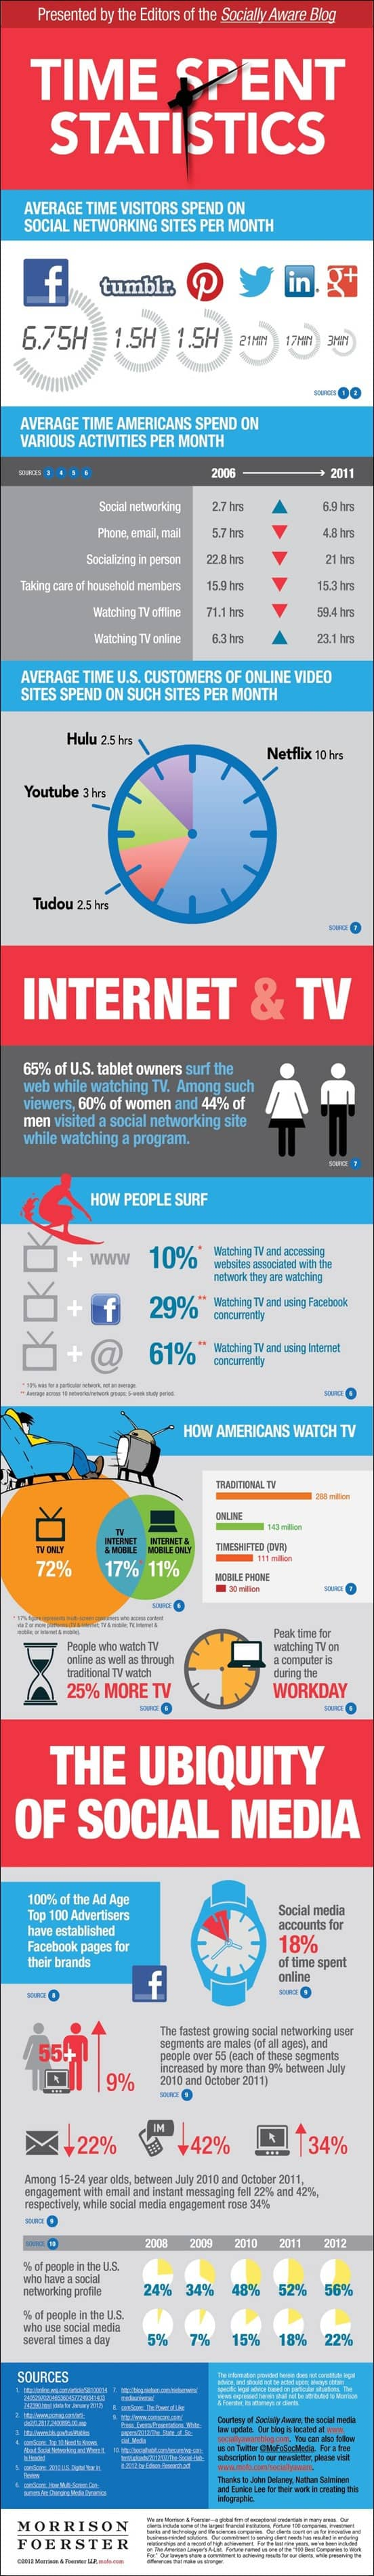 how-social-media-usage-will-change-in-2013